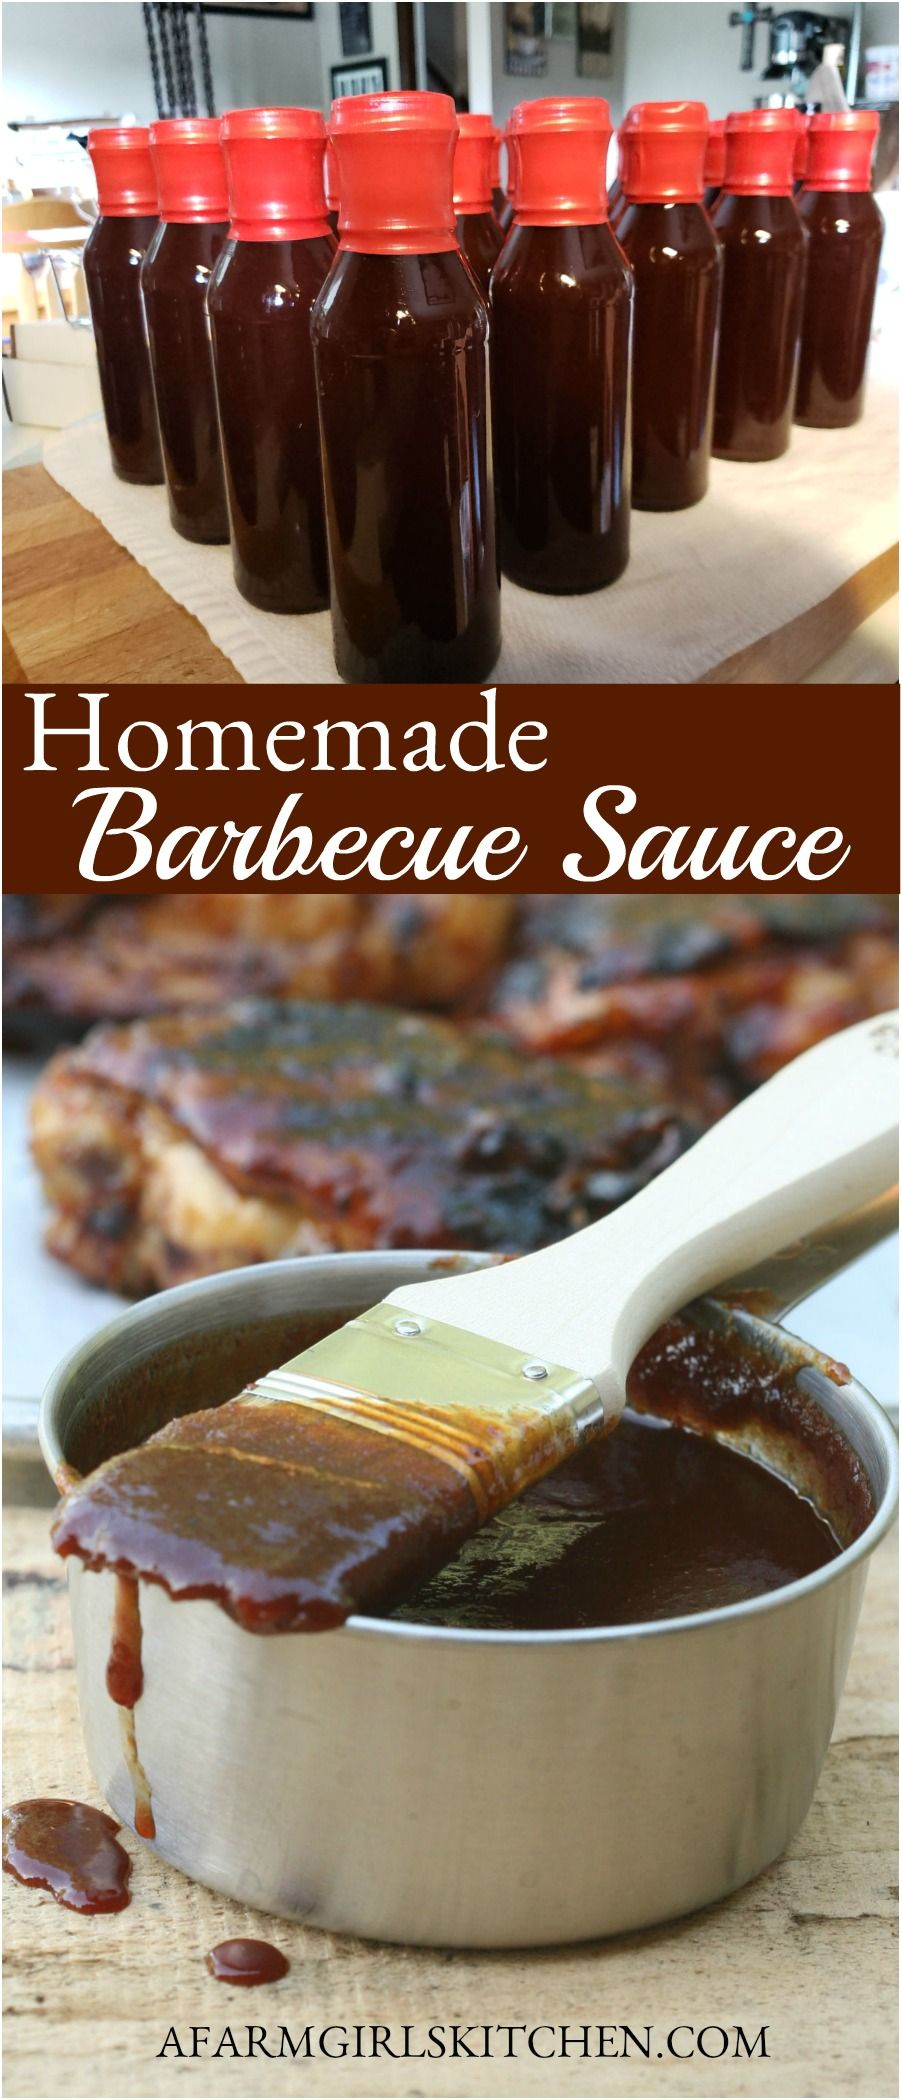 Best Homemade Barbecue Sauce Simple Ingredients Homemade Barbecue Sauce Recipe Bbq Sauce Homemade Homemade Barbecue Sauce